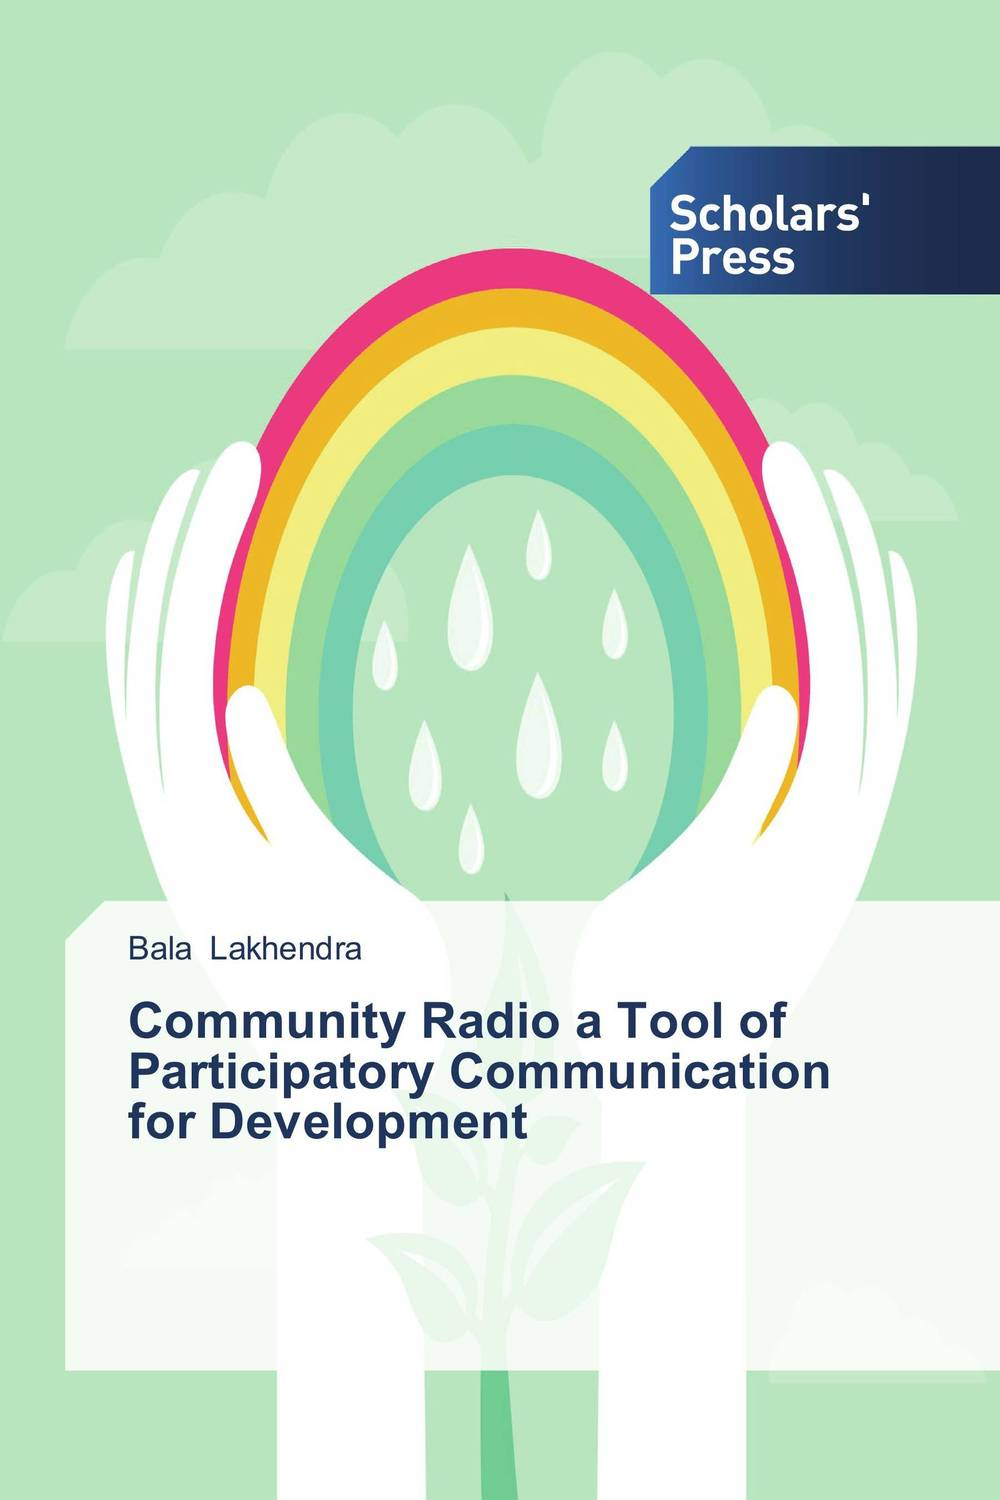 Community Radio a Tool of Participatory Communication for Development edgar iii wachenheim common stocks and common sense the strategies analyses decisions and emotions of a particularly successful value investor